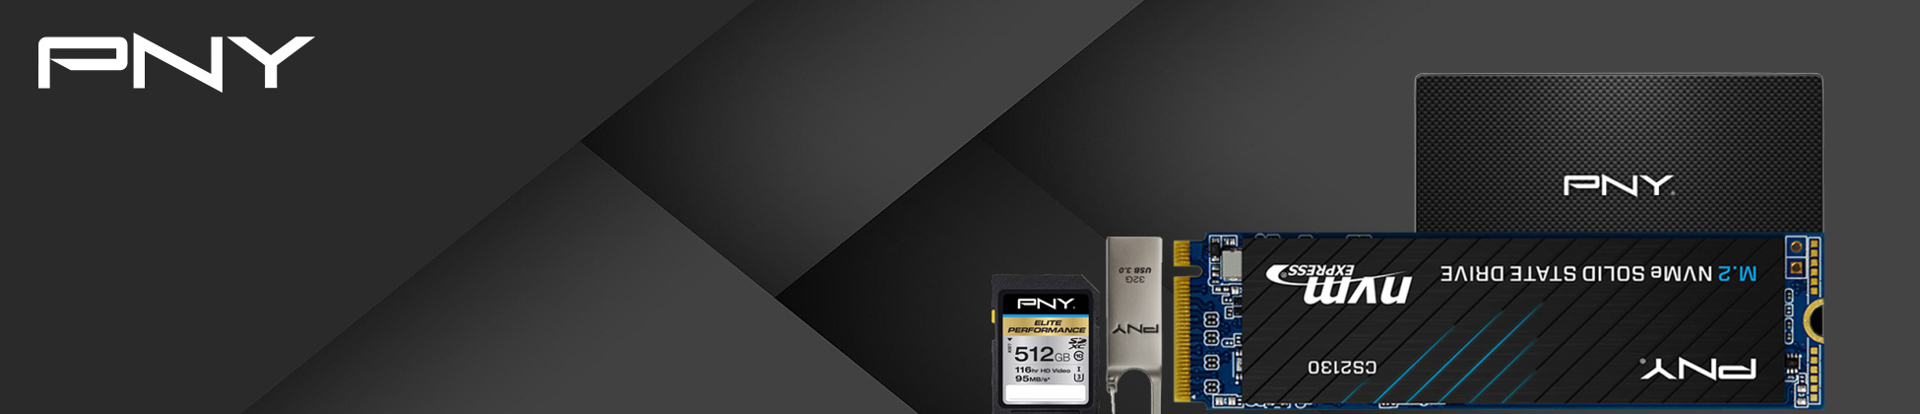 Picture for brand PNY